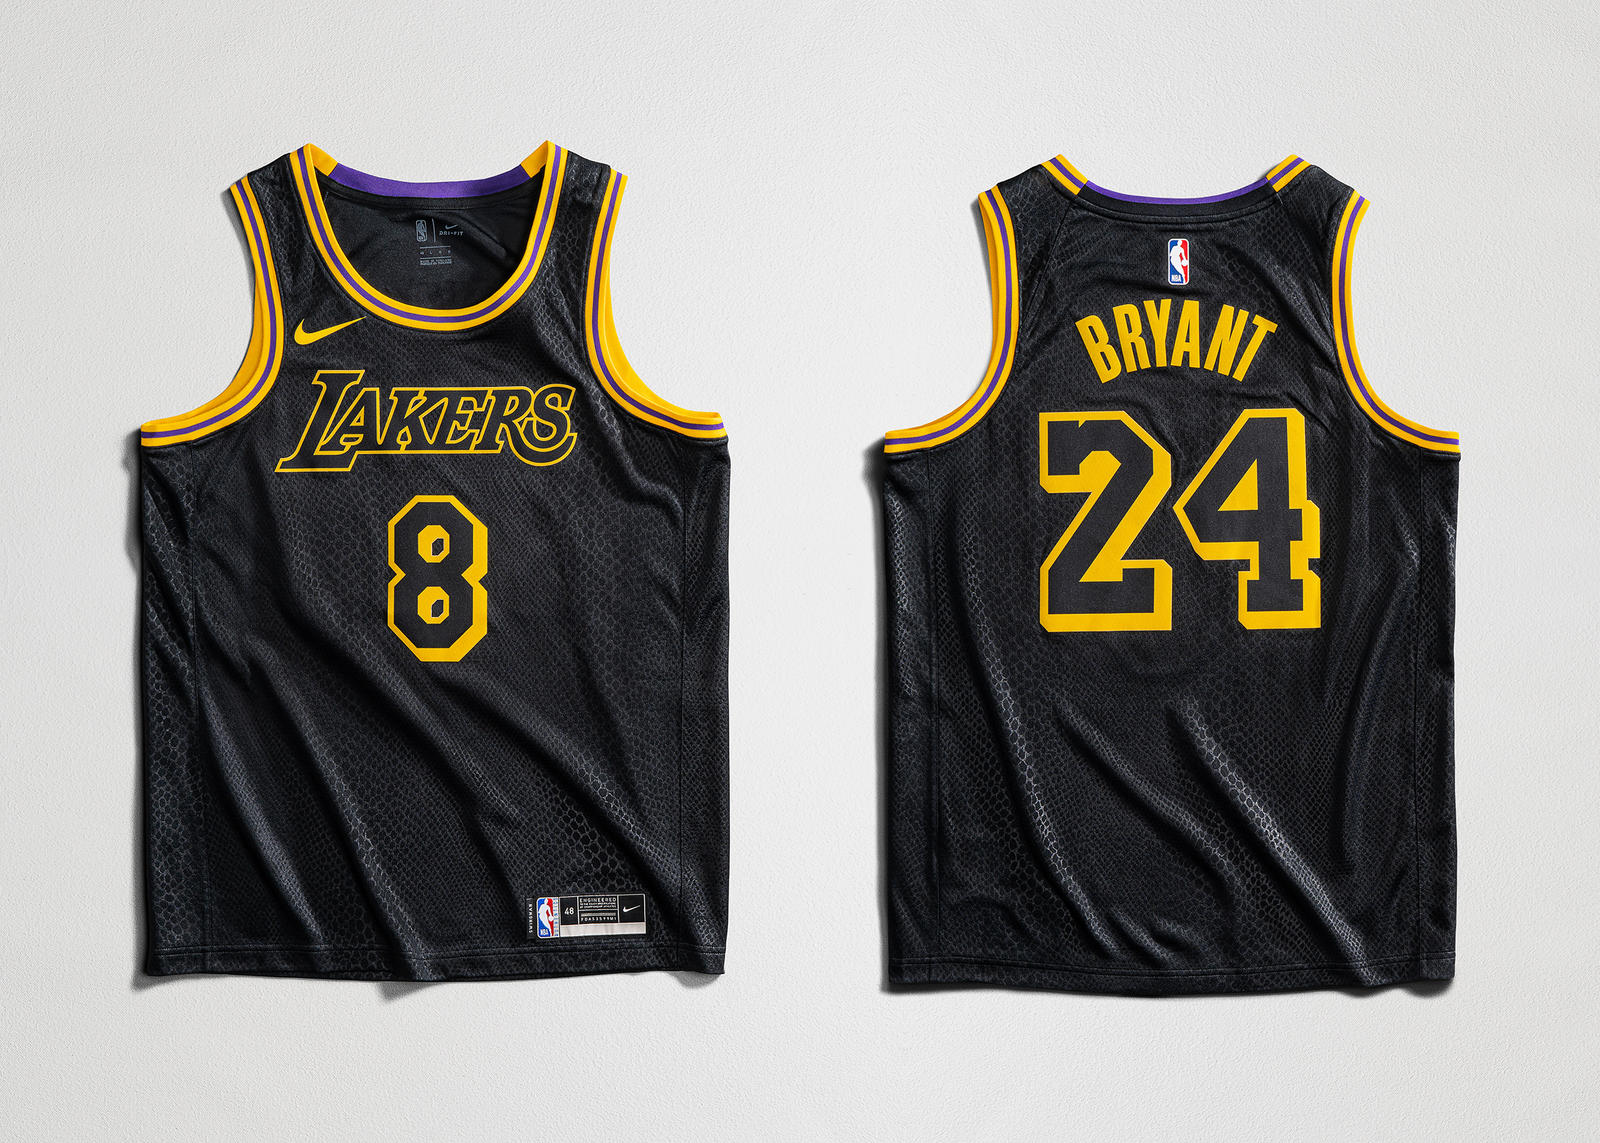 Kobe Bryant Mamba Week 2020 Footwear and Jersey 12